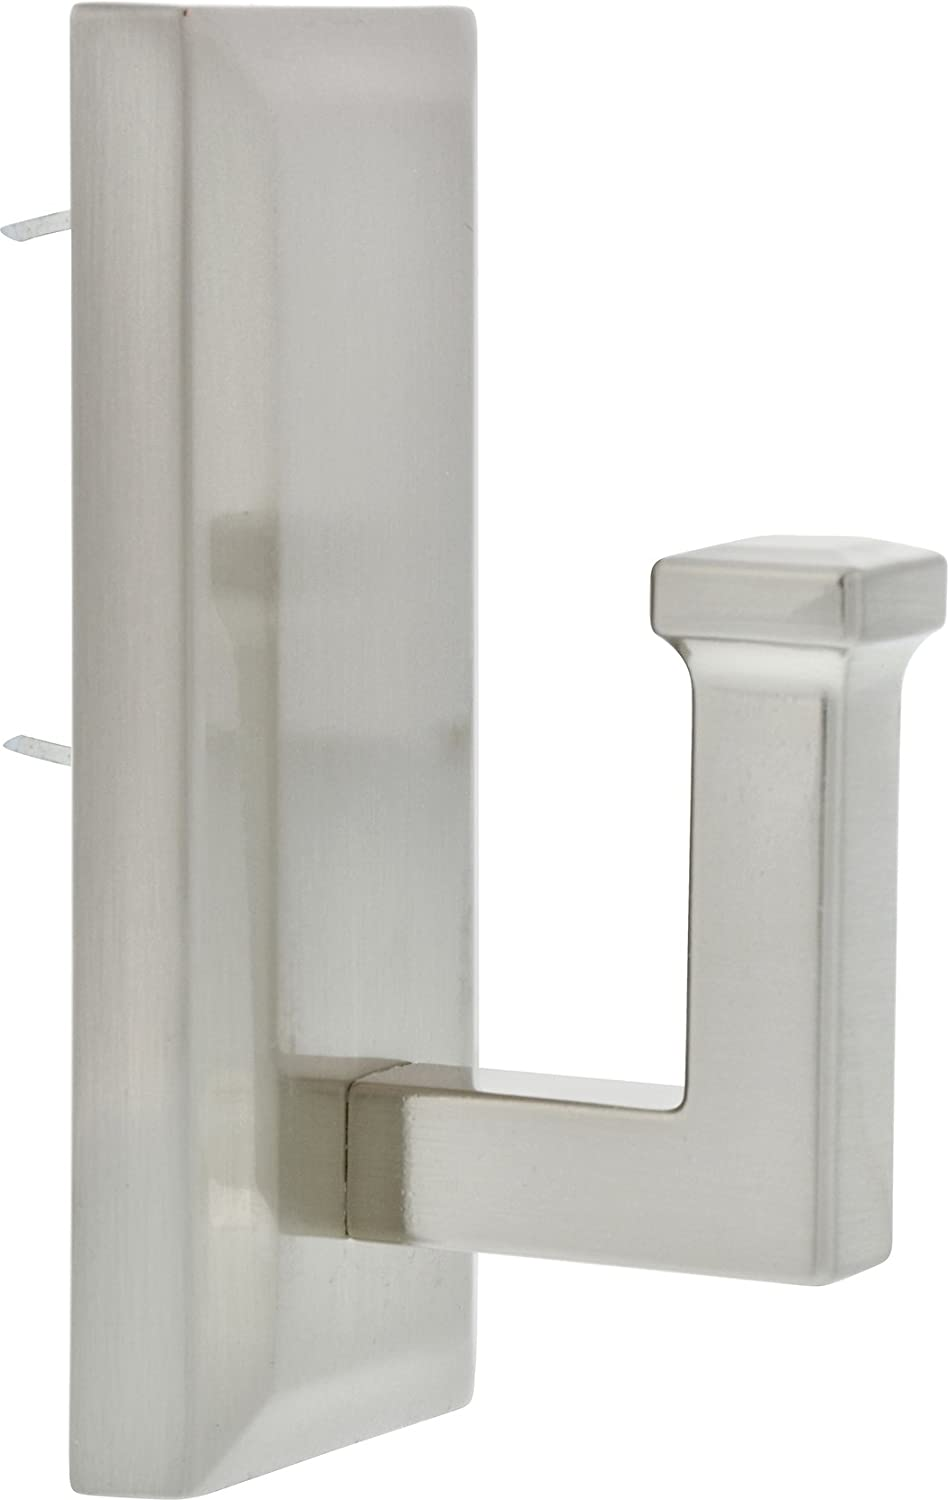 Hillman 515806 Decorative Rectangular Shaped Hook hold up to 25 lb Satin Nickel Metal 1.5x3.5 Inches 1 Hook